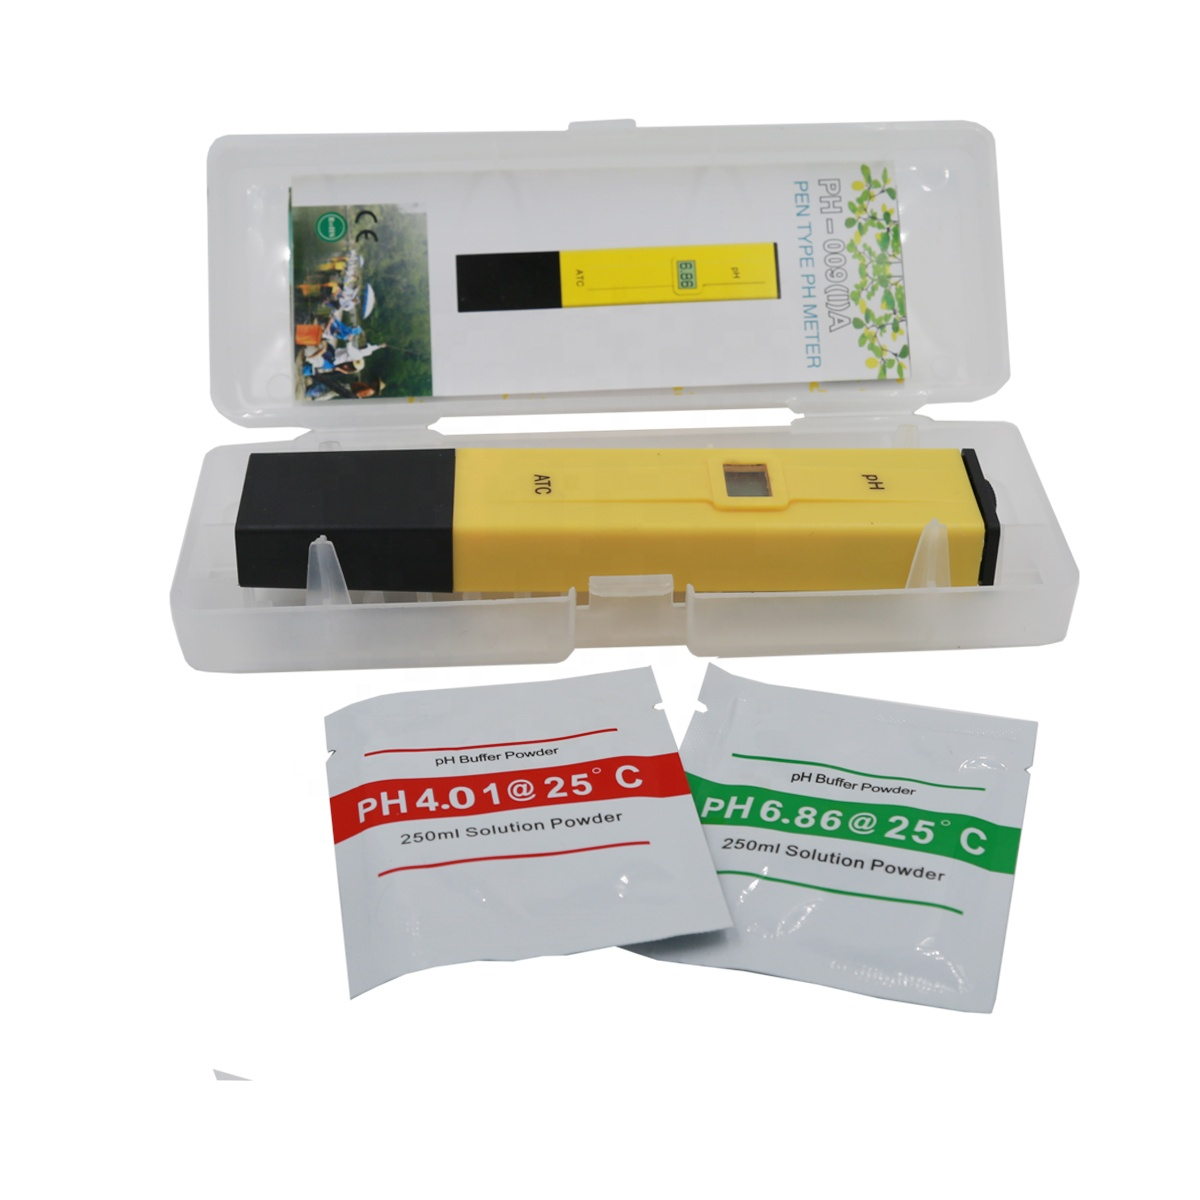 Pocket Pen Water test Digital PH Meter Tester PH-009 IA 0.0-14.0 pH for Aquarium portable Pool Water Laboratory with retail box